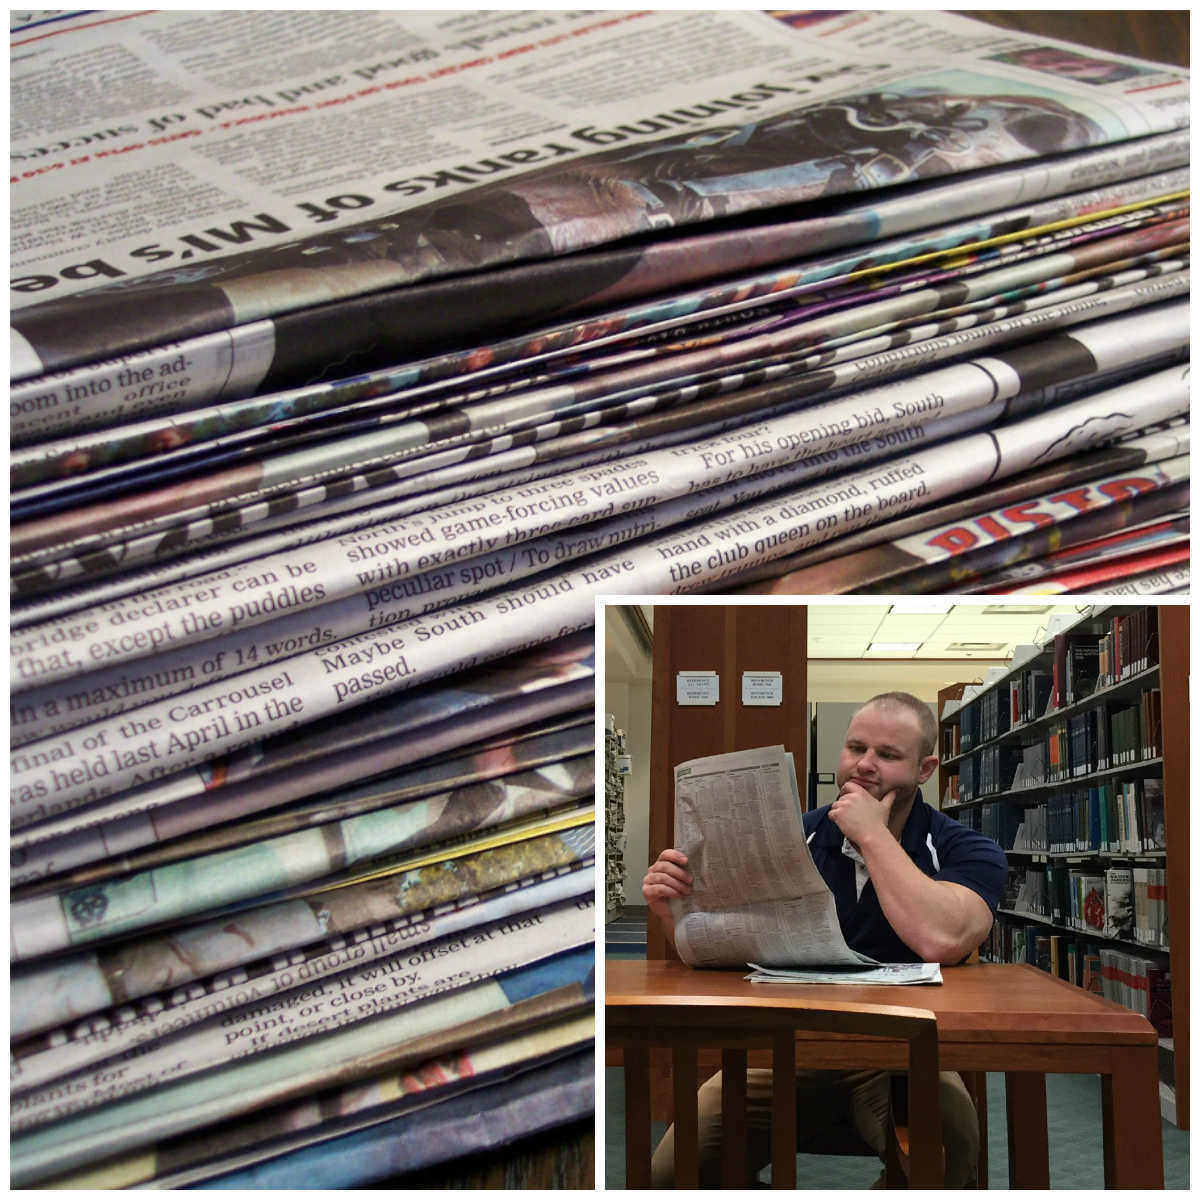 collage of newspapers and a reader